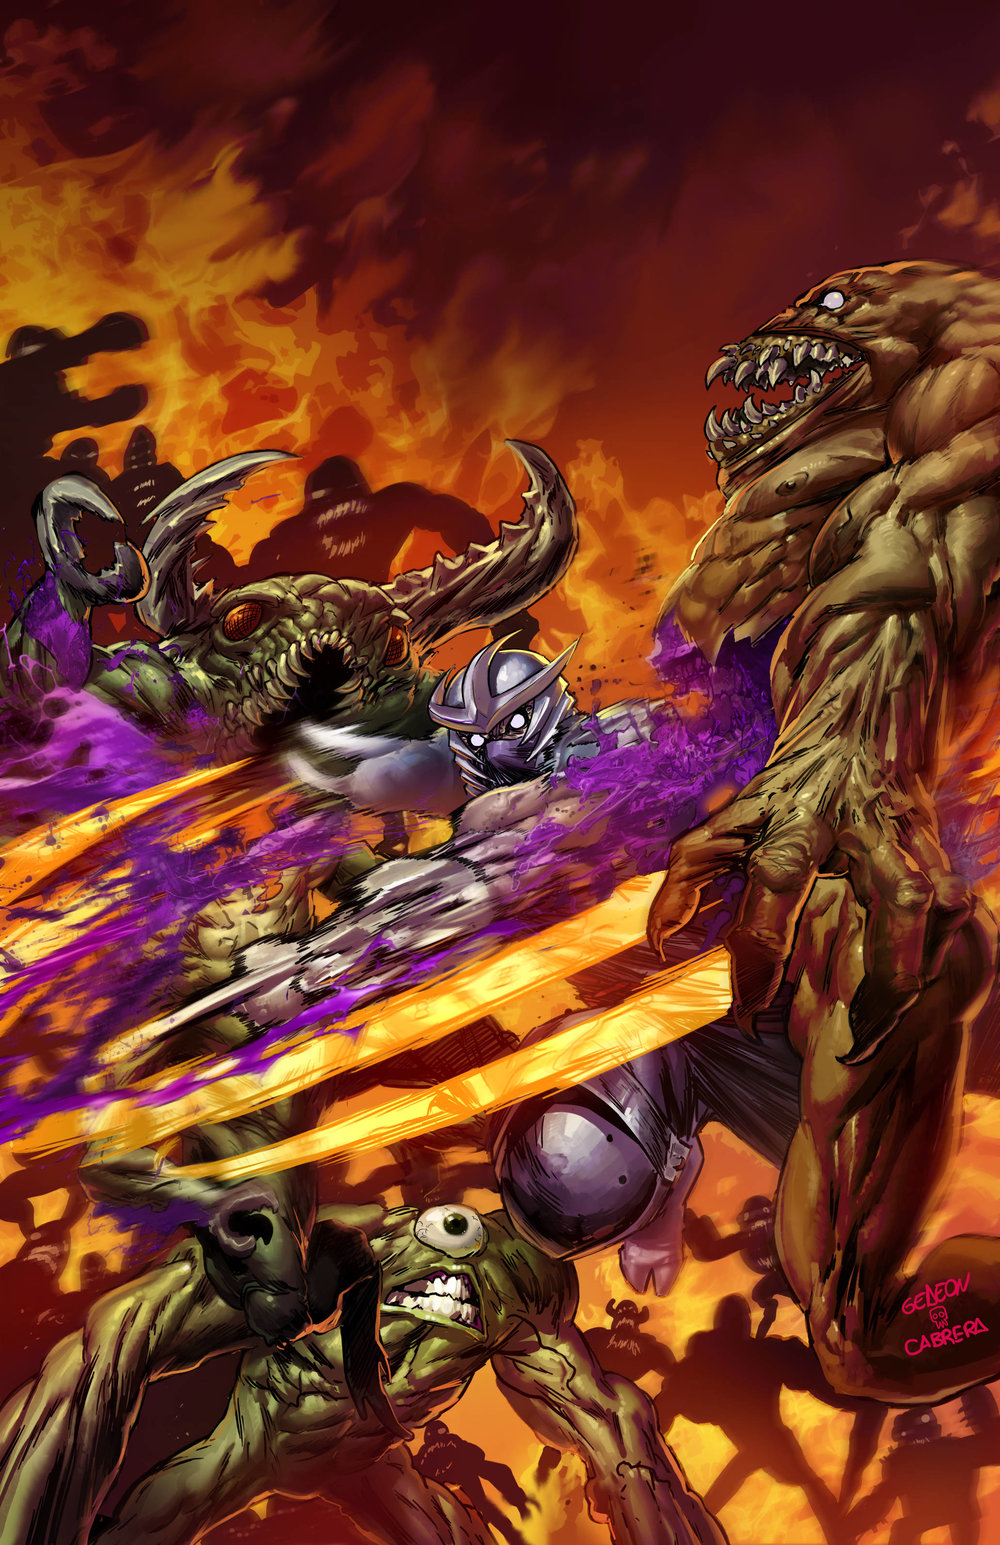 TMNT SHREDDER IN HELL 3 10 COPY INCV GEDEON.jpg